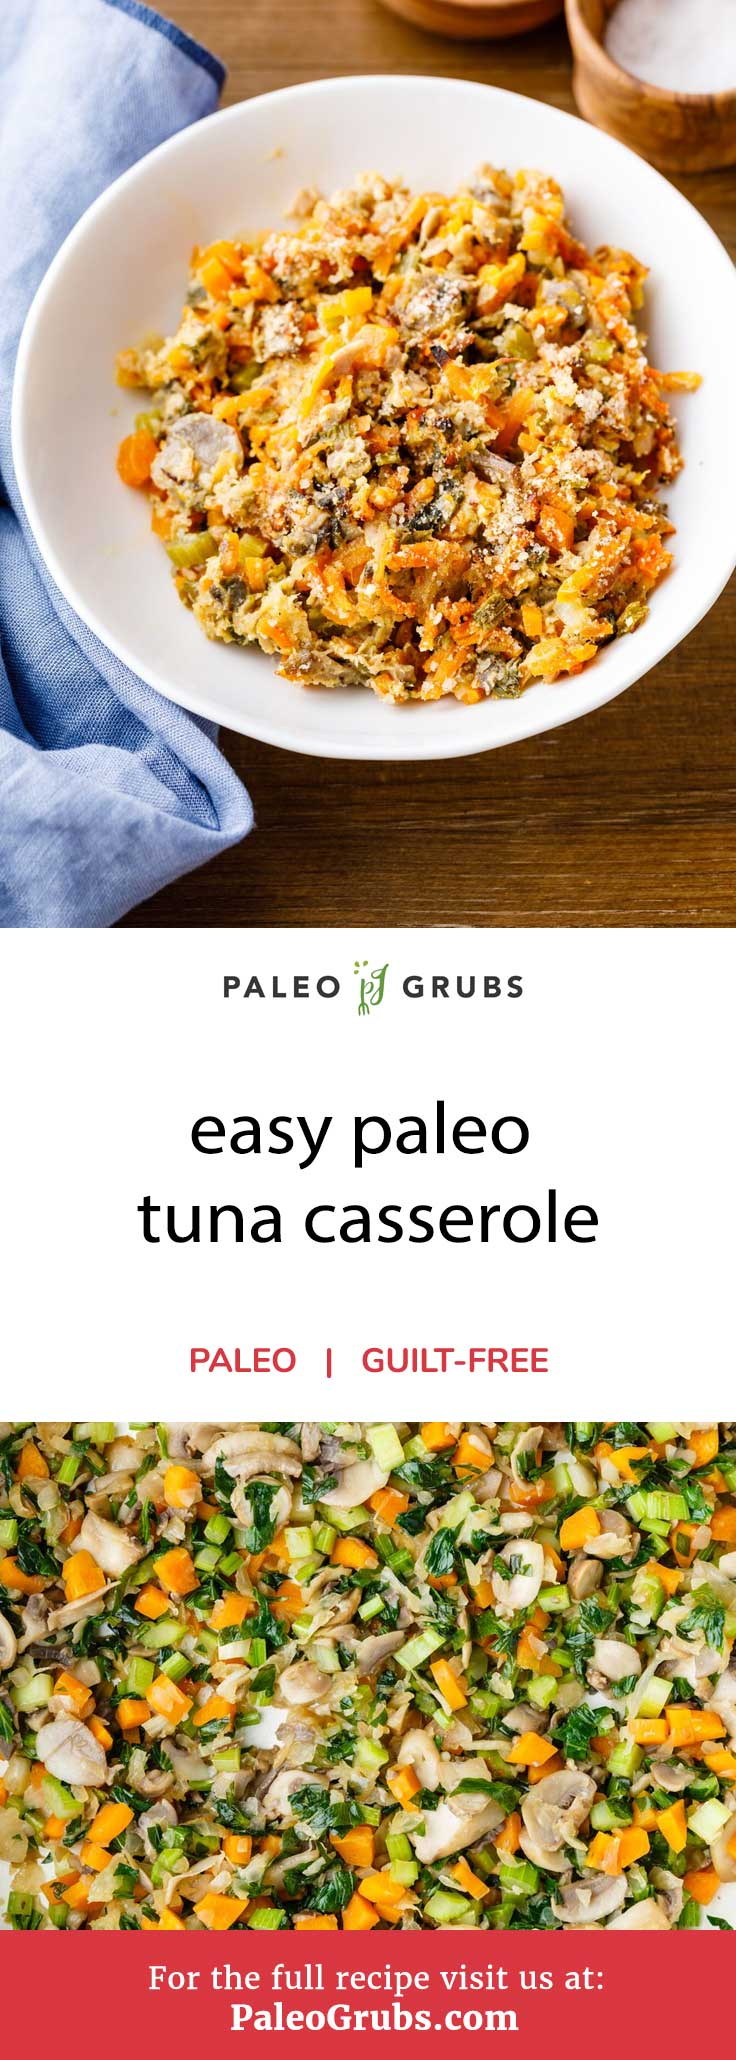 Paleo-friendly tuna casserole is an excellent meal to prepare that provides you with plenty of protein and omega-3 fatty acids. Typically, casserole dishes are made with pasta noodles but this recipe adds a unique paleo twist to the formula by swapping them out for spiralized sweet potatoes instead. The casserole is rounded out by including more healthy veggies like celery, carrots, and mushrooms. And just wait until you try the homemade sauce.